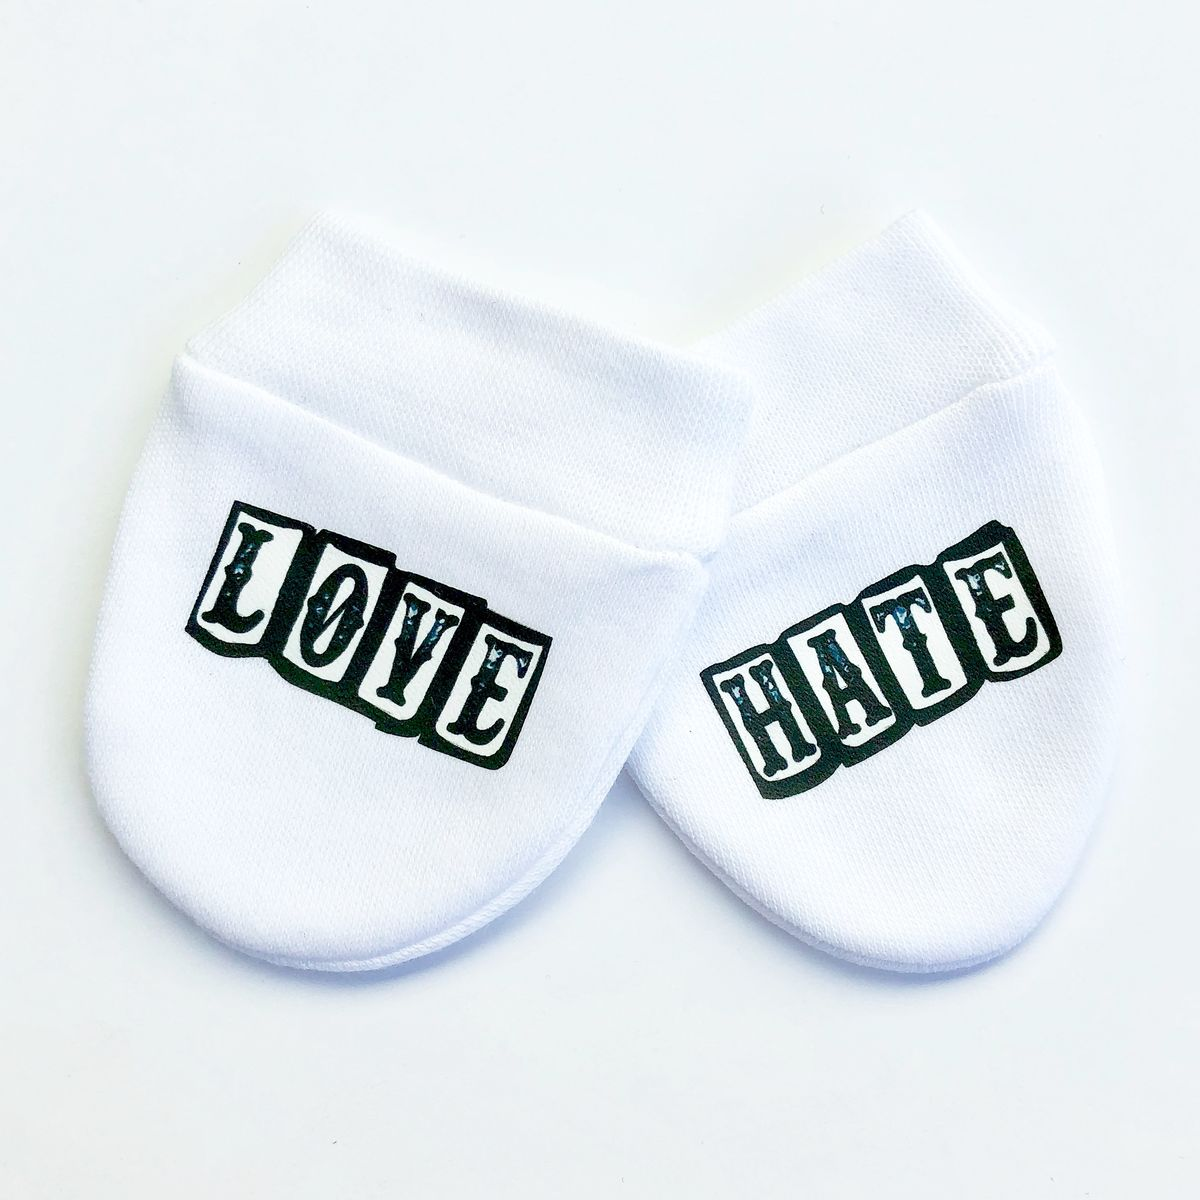 Love Hate Mittens Baby Infant Newborn Gloves Cute Punk Alternative Different Fun